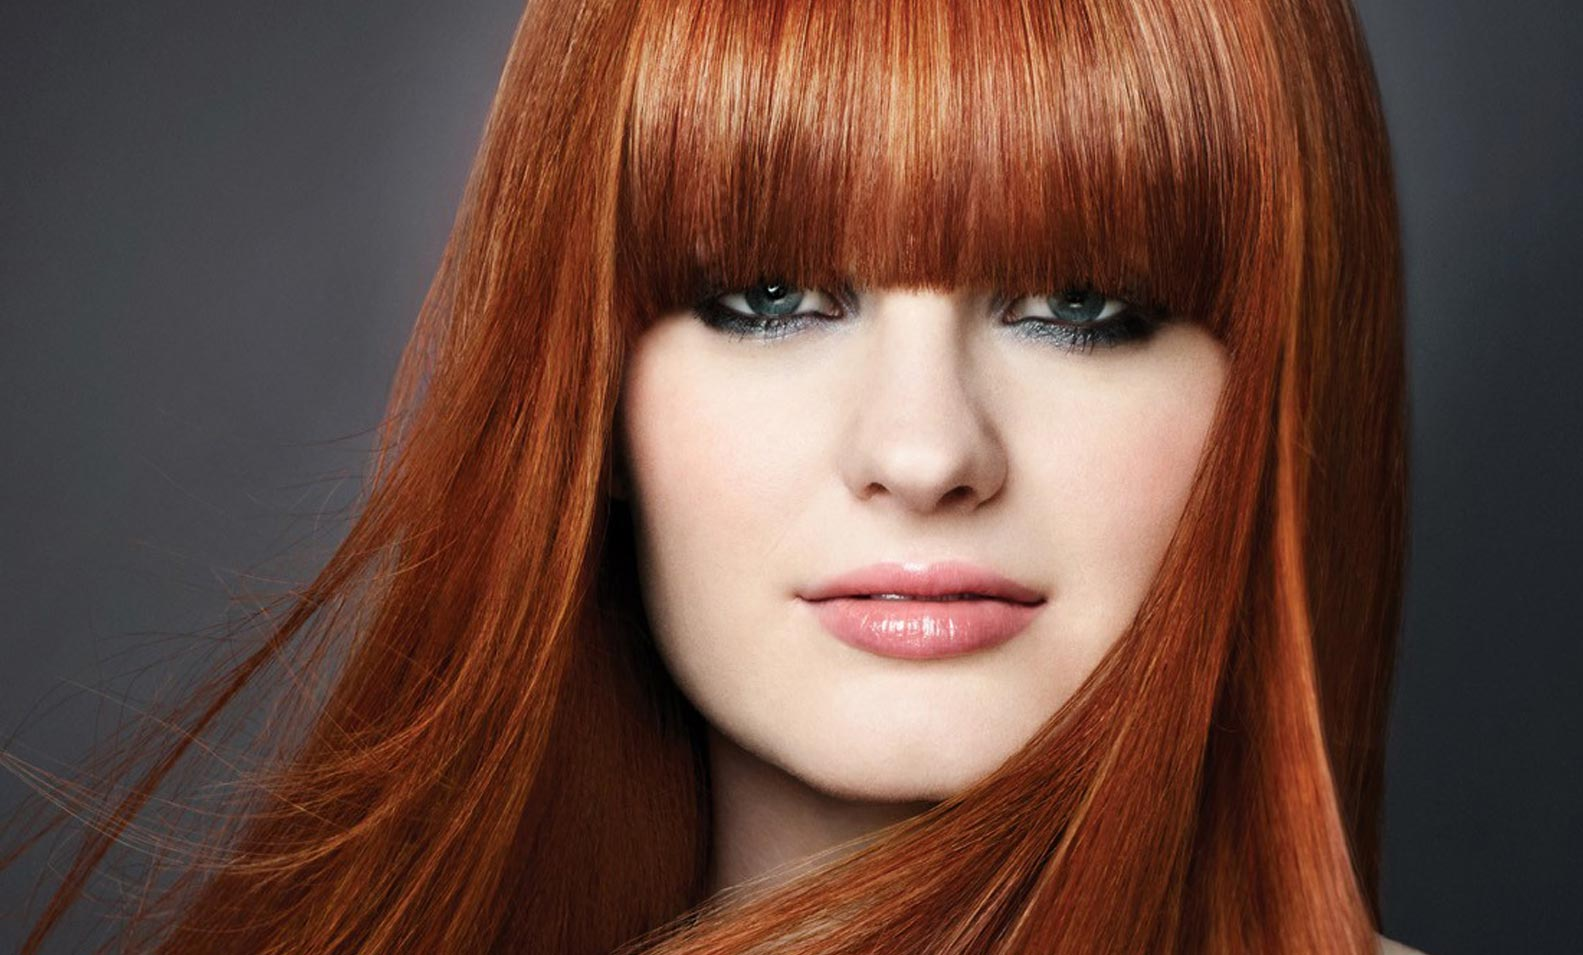 Chemical Services - The Look Salon Houston